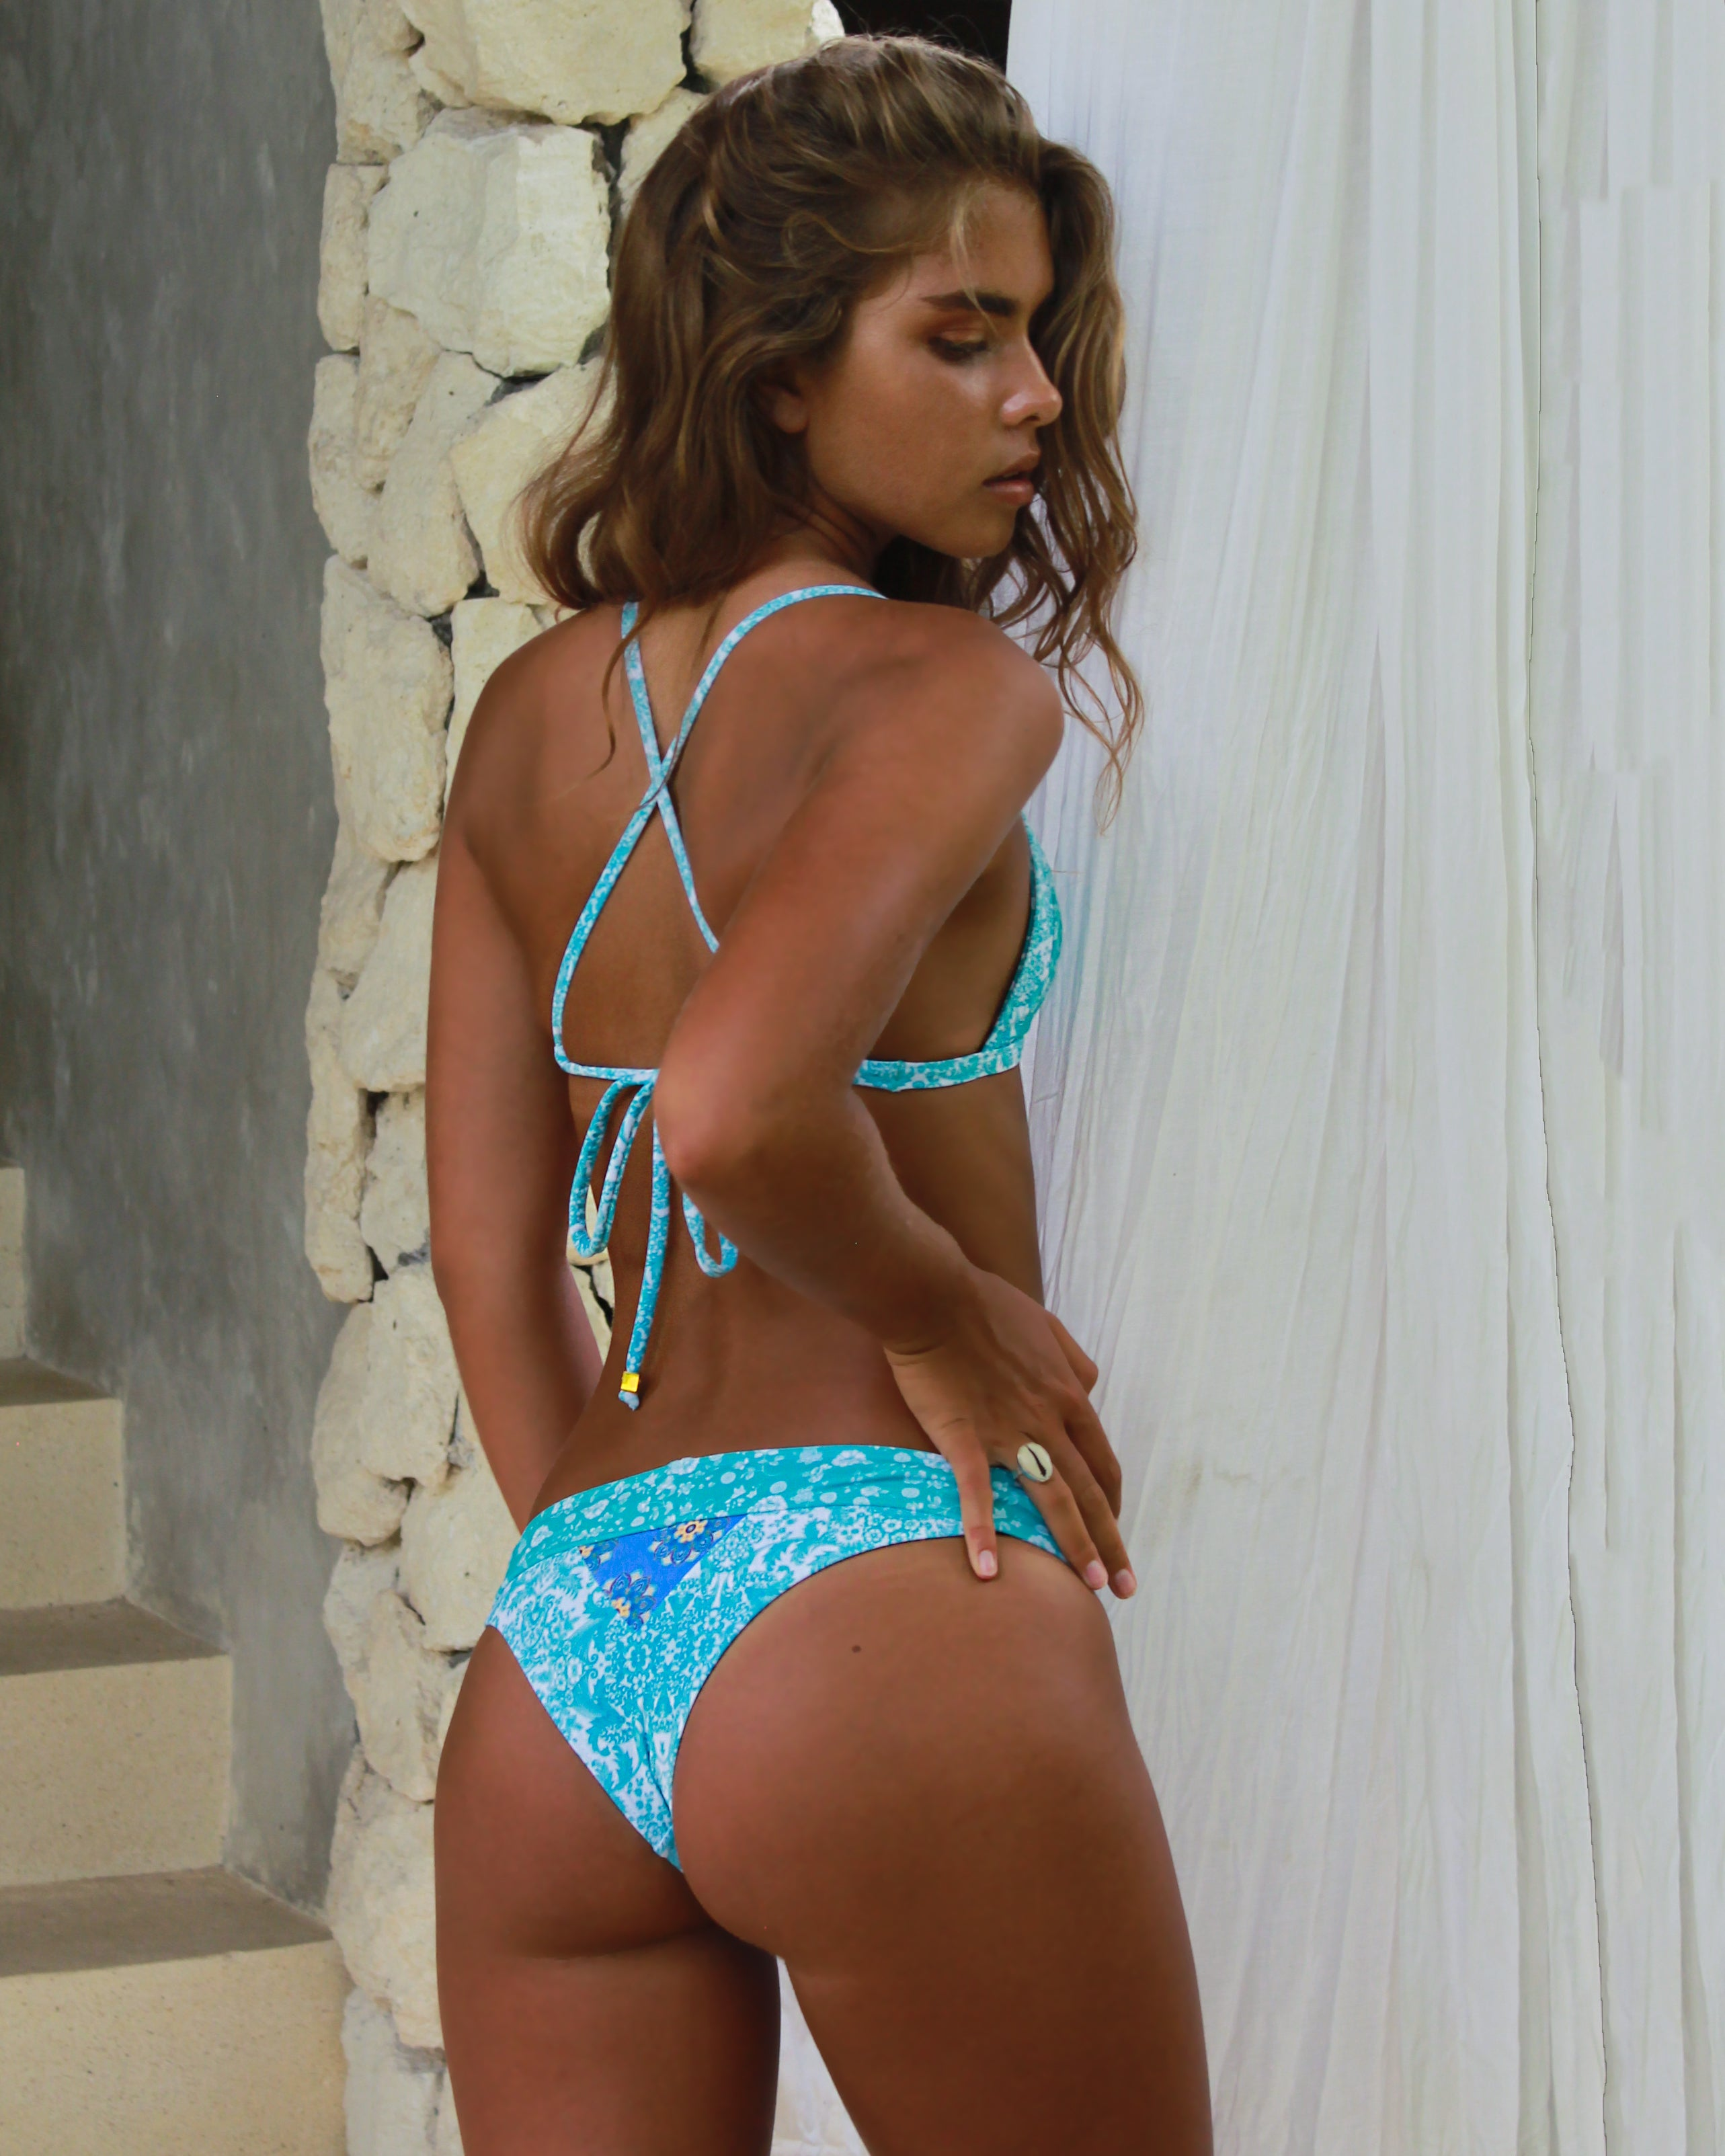 Nexpa Top - Antique / Springfields - cheeky cut brazilian surf bikinis Cenote Swimwear that stays on in the surf